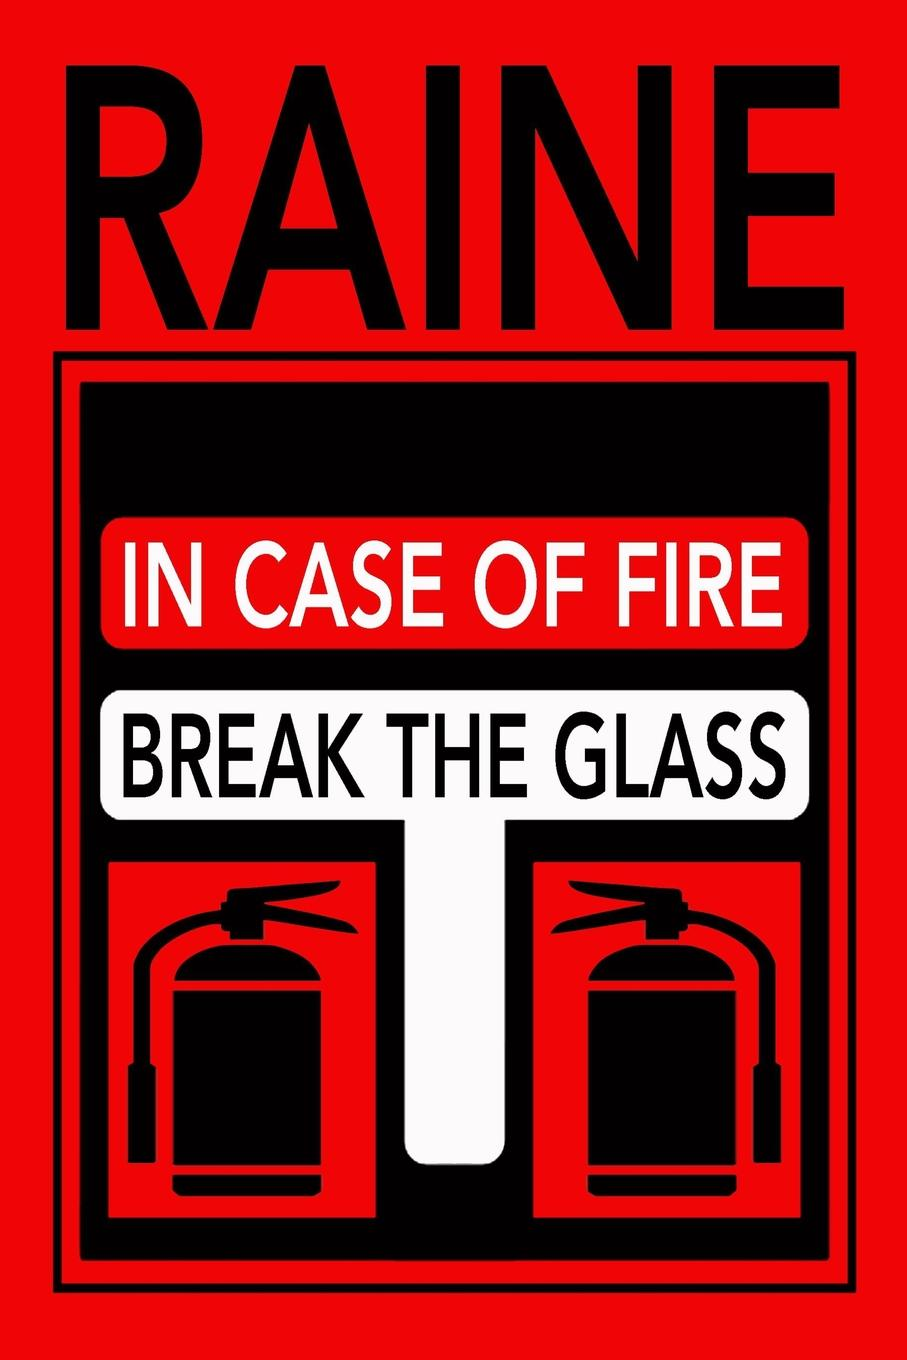 JULIAN RAINE IN CASE OF FIRE, BREAK THE GLASS julian raine kings to you